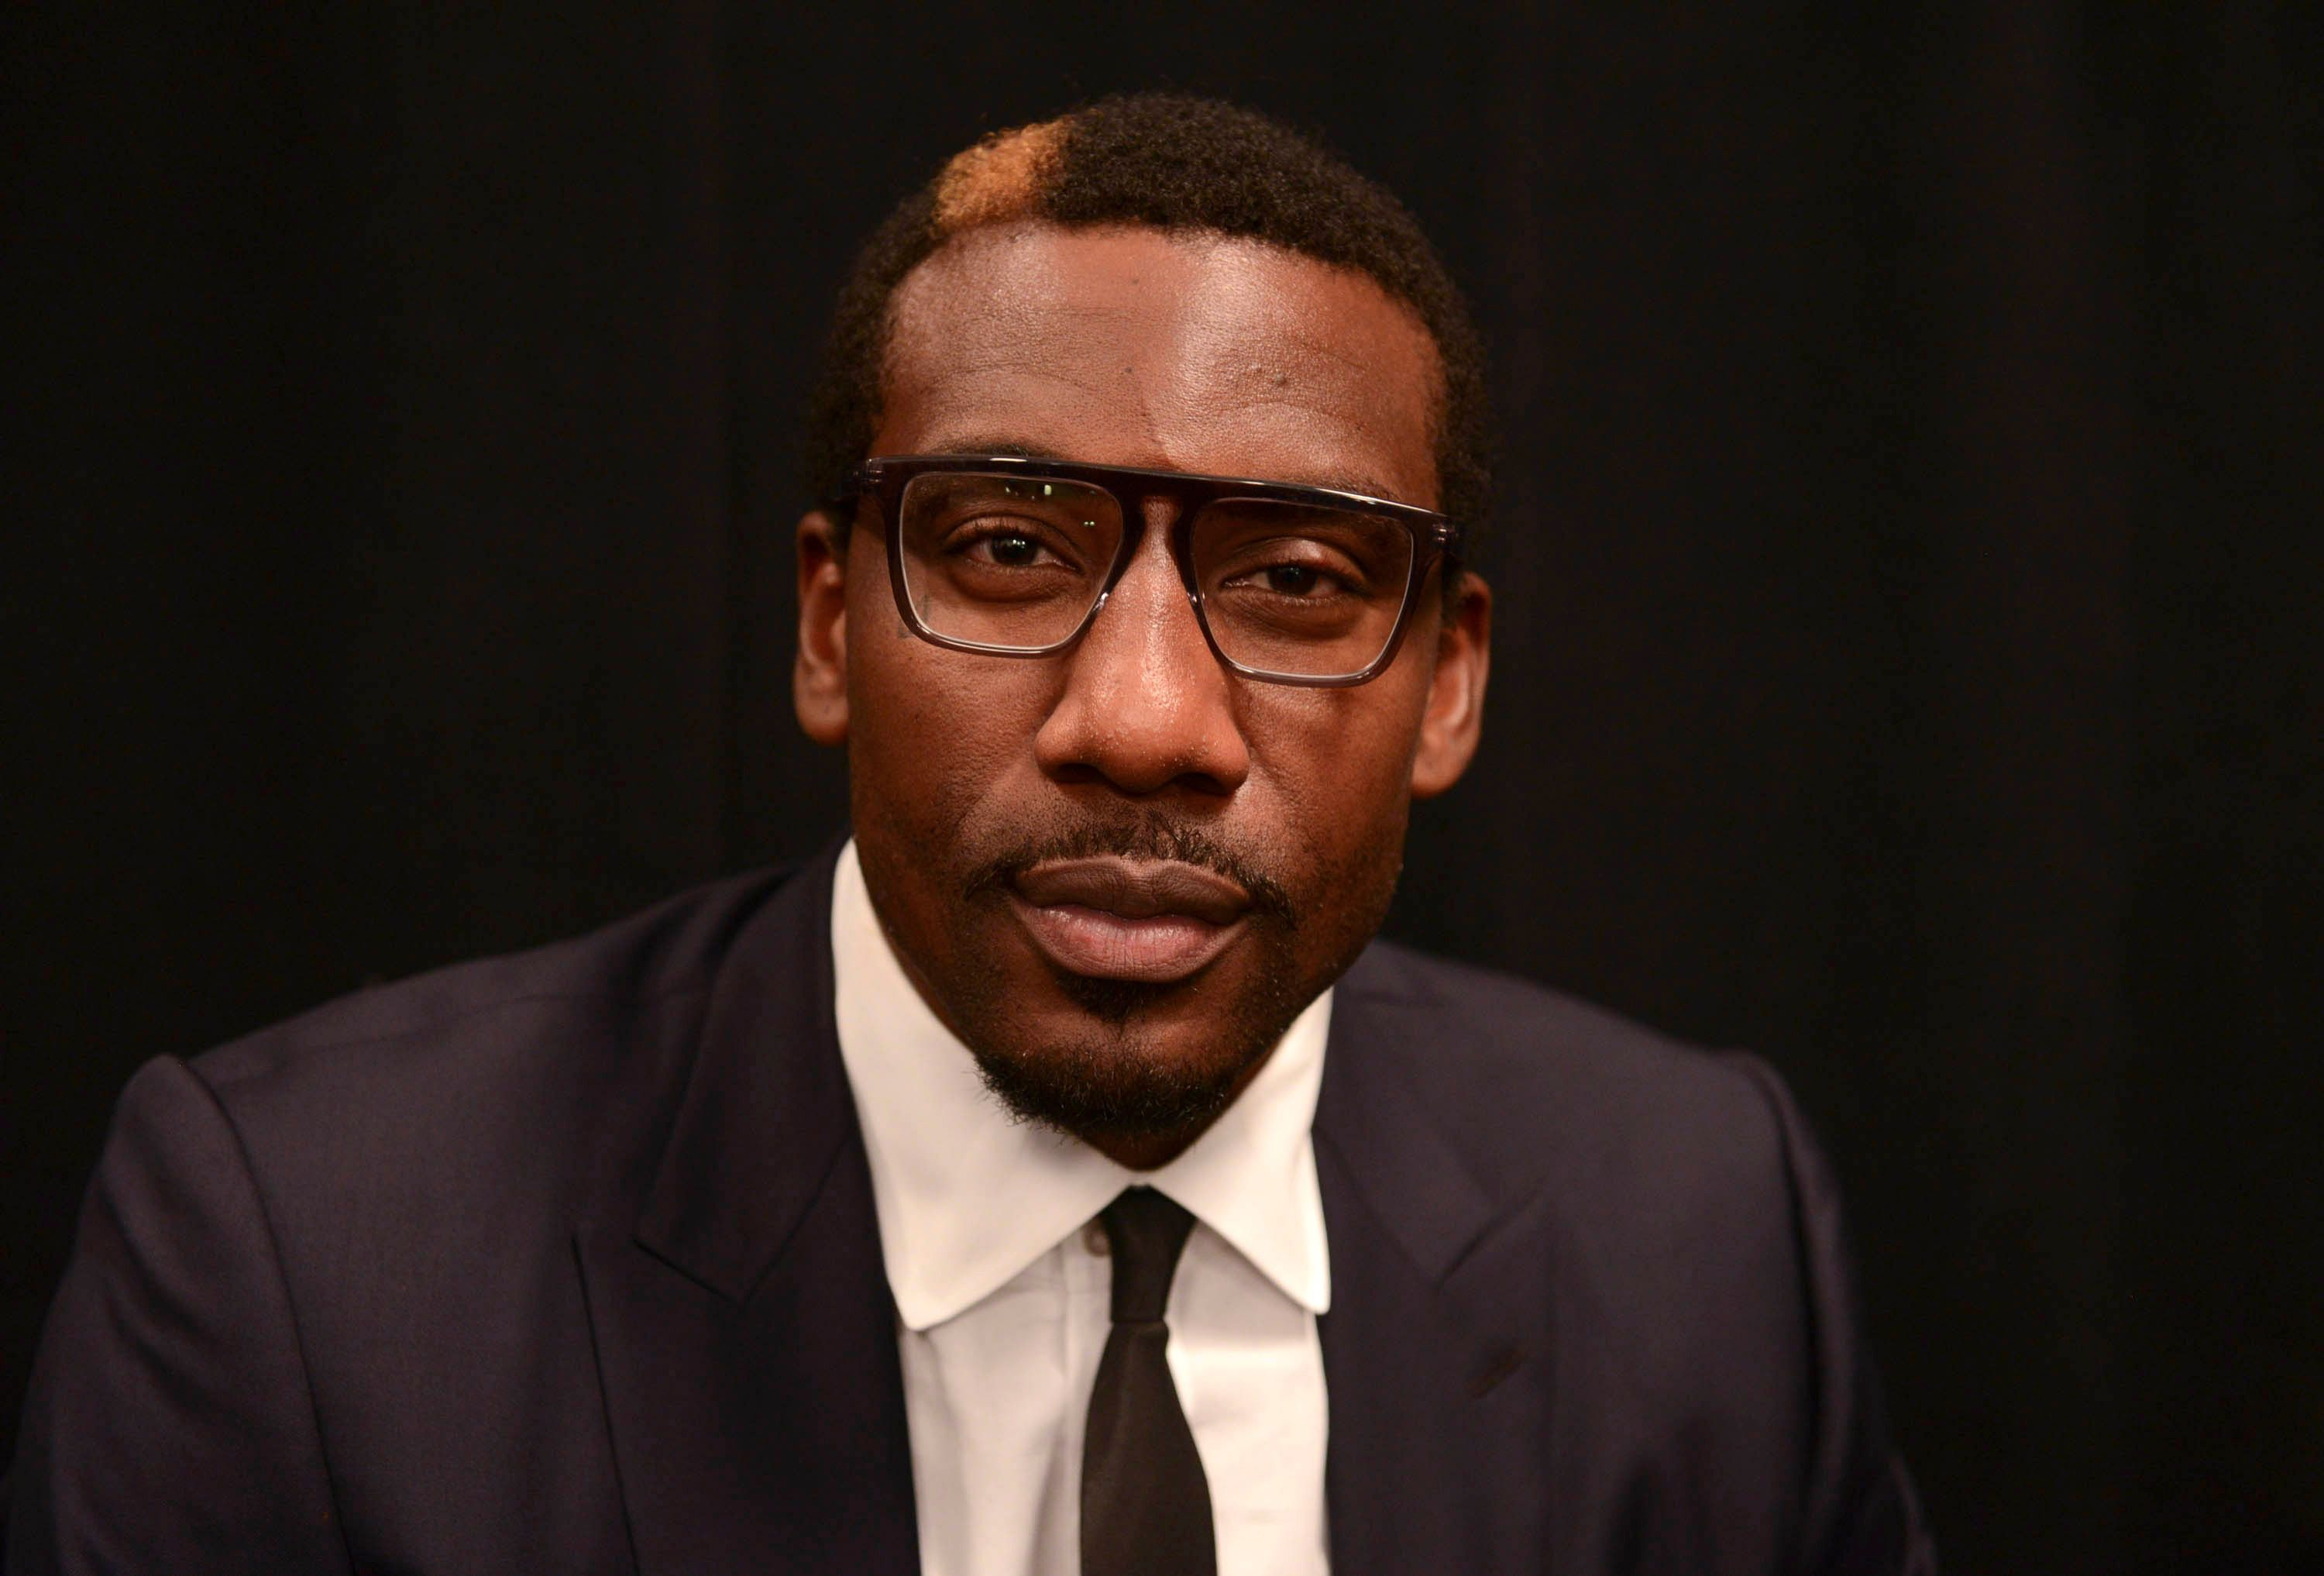 WATCH NBA Star Amar e Stoudemire Given Grand Wel e in Israel